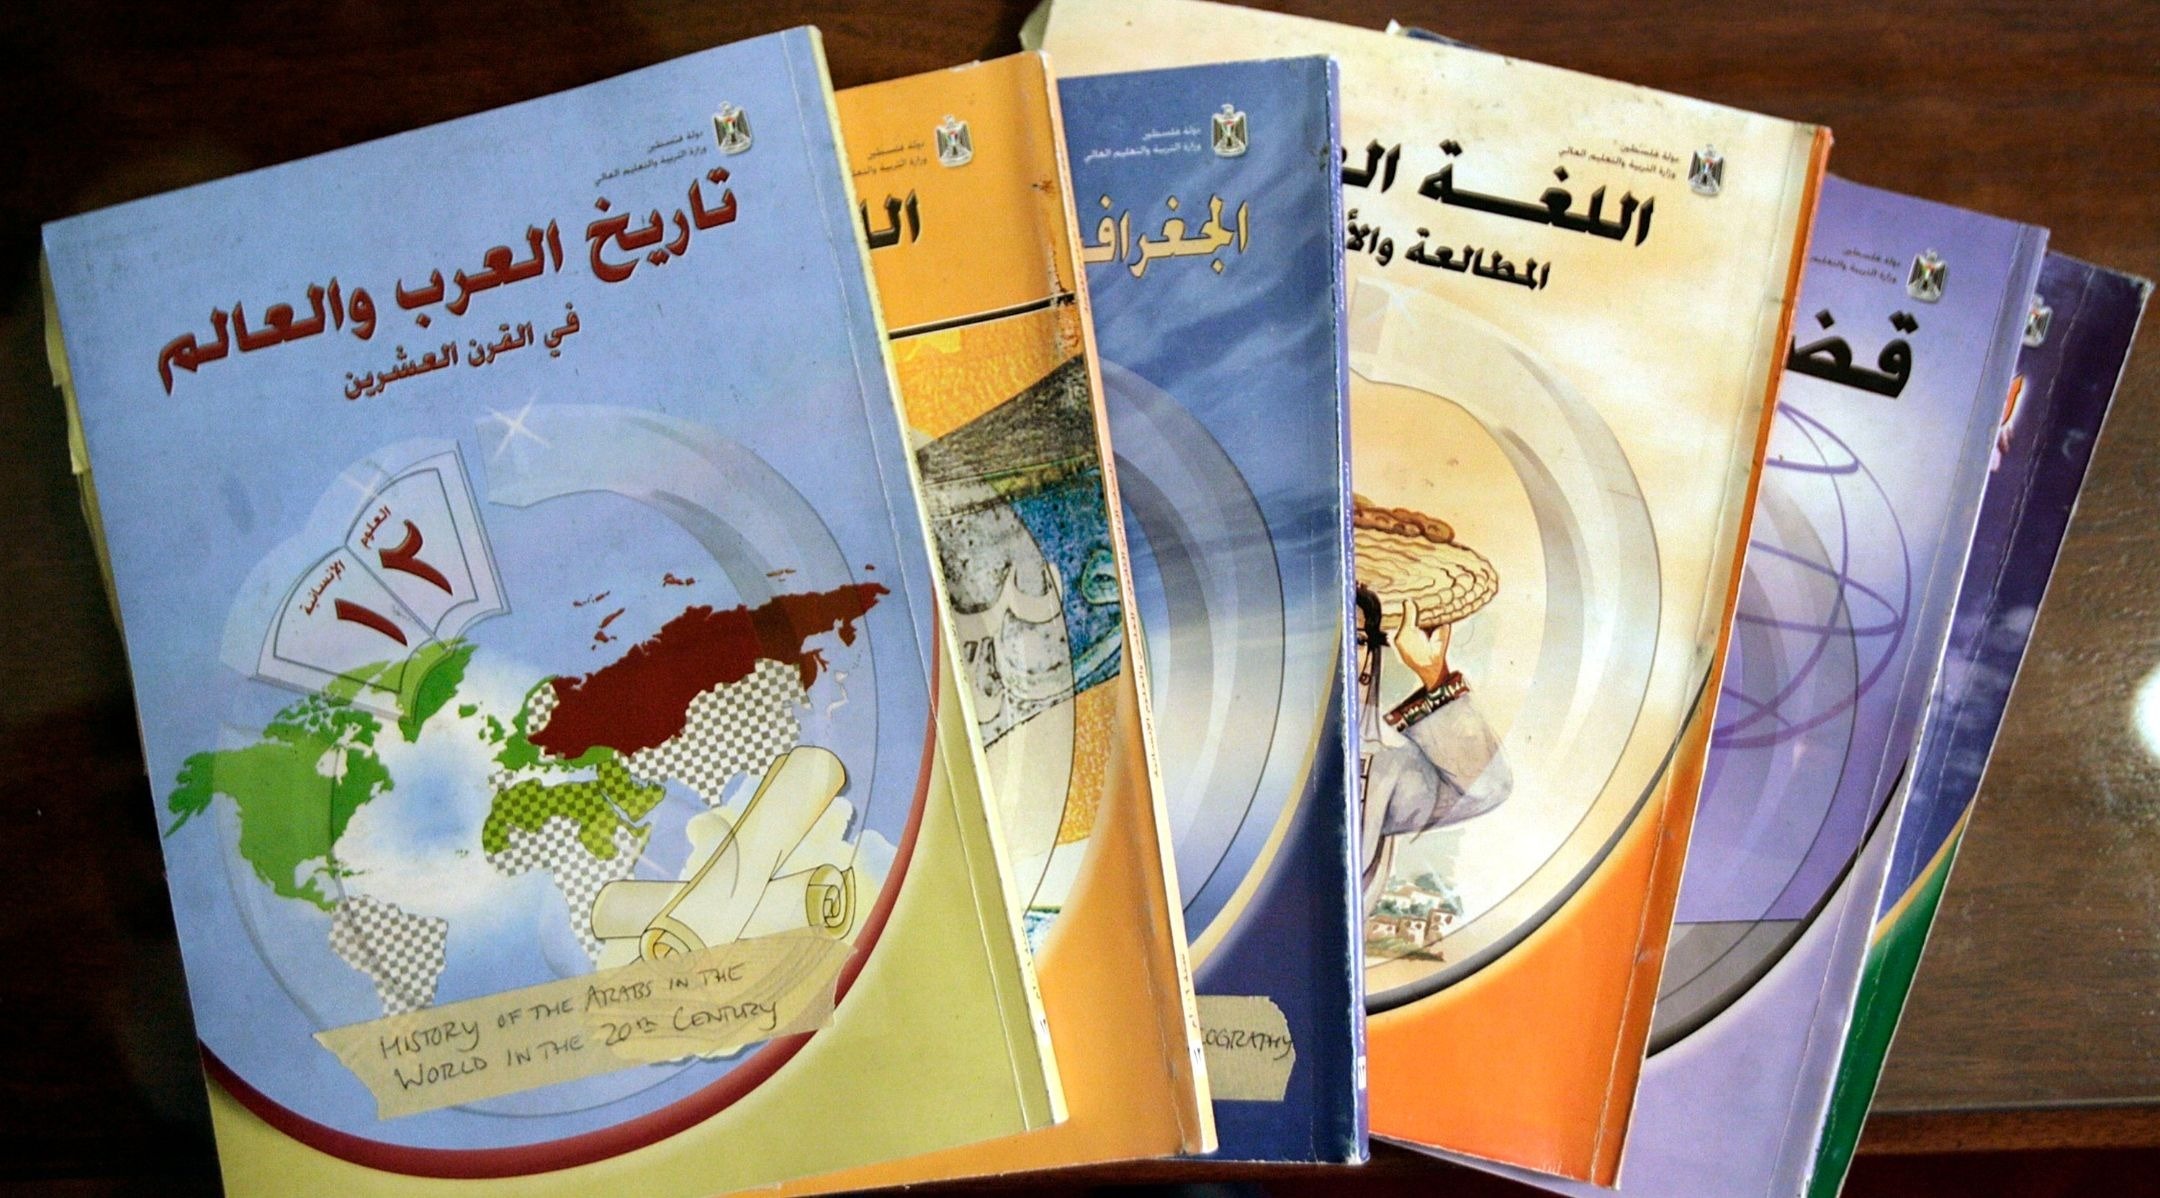 Norway will withhold funding to Palestinians over textbooks it says promote hate and violence